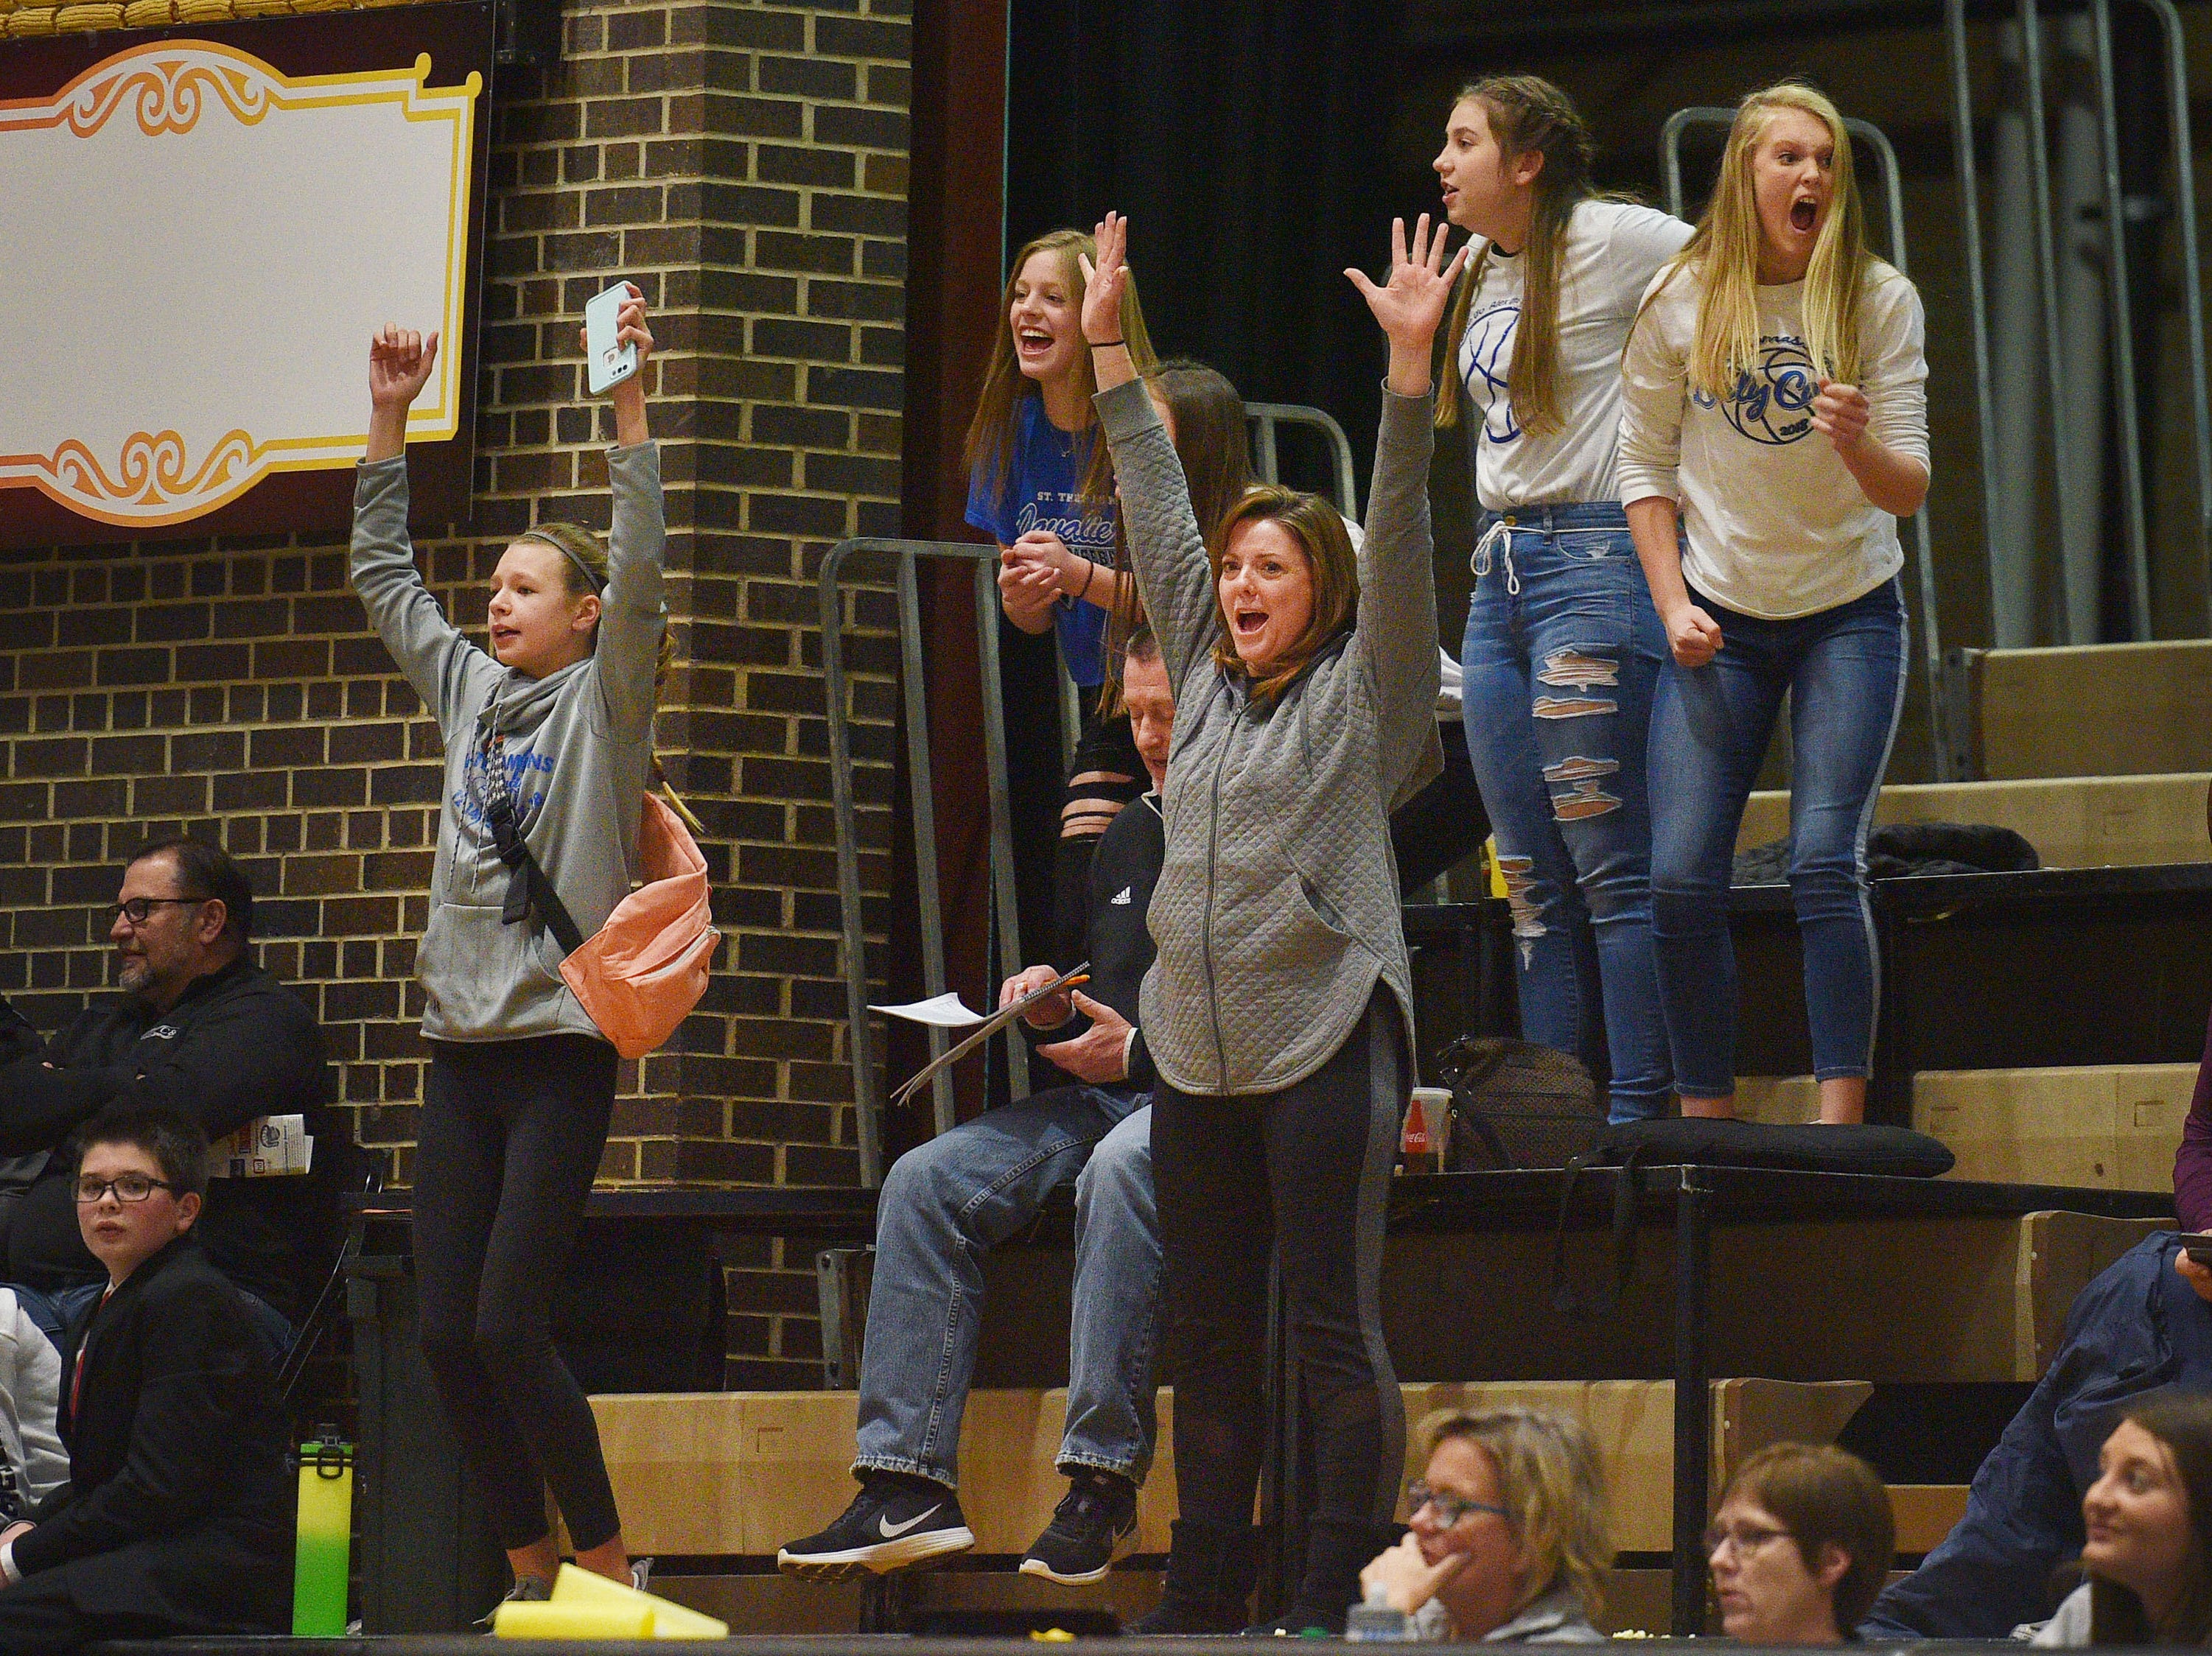 St. Thomas More fans cheer during the game against Lennox in the Hanson Girls Classic Saturday,  Jan. 12, in Mitchell.